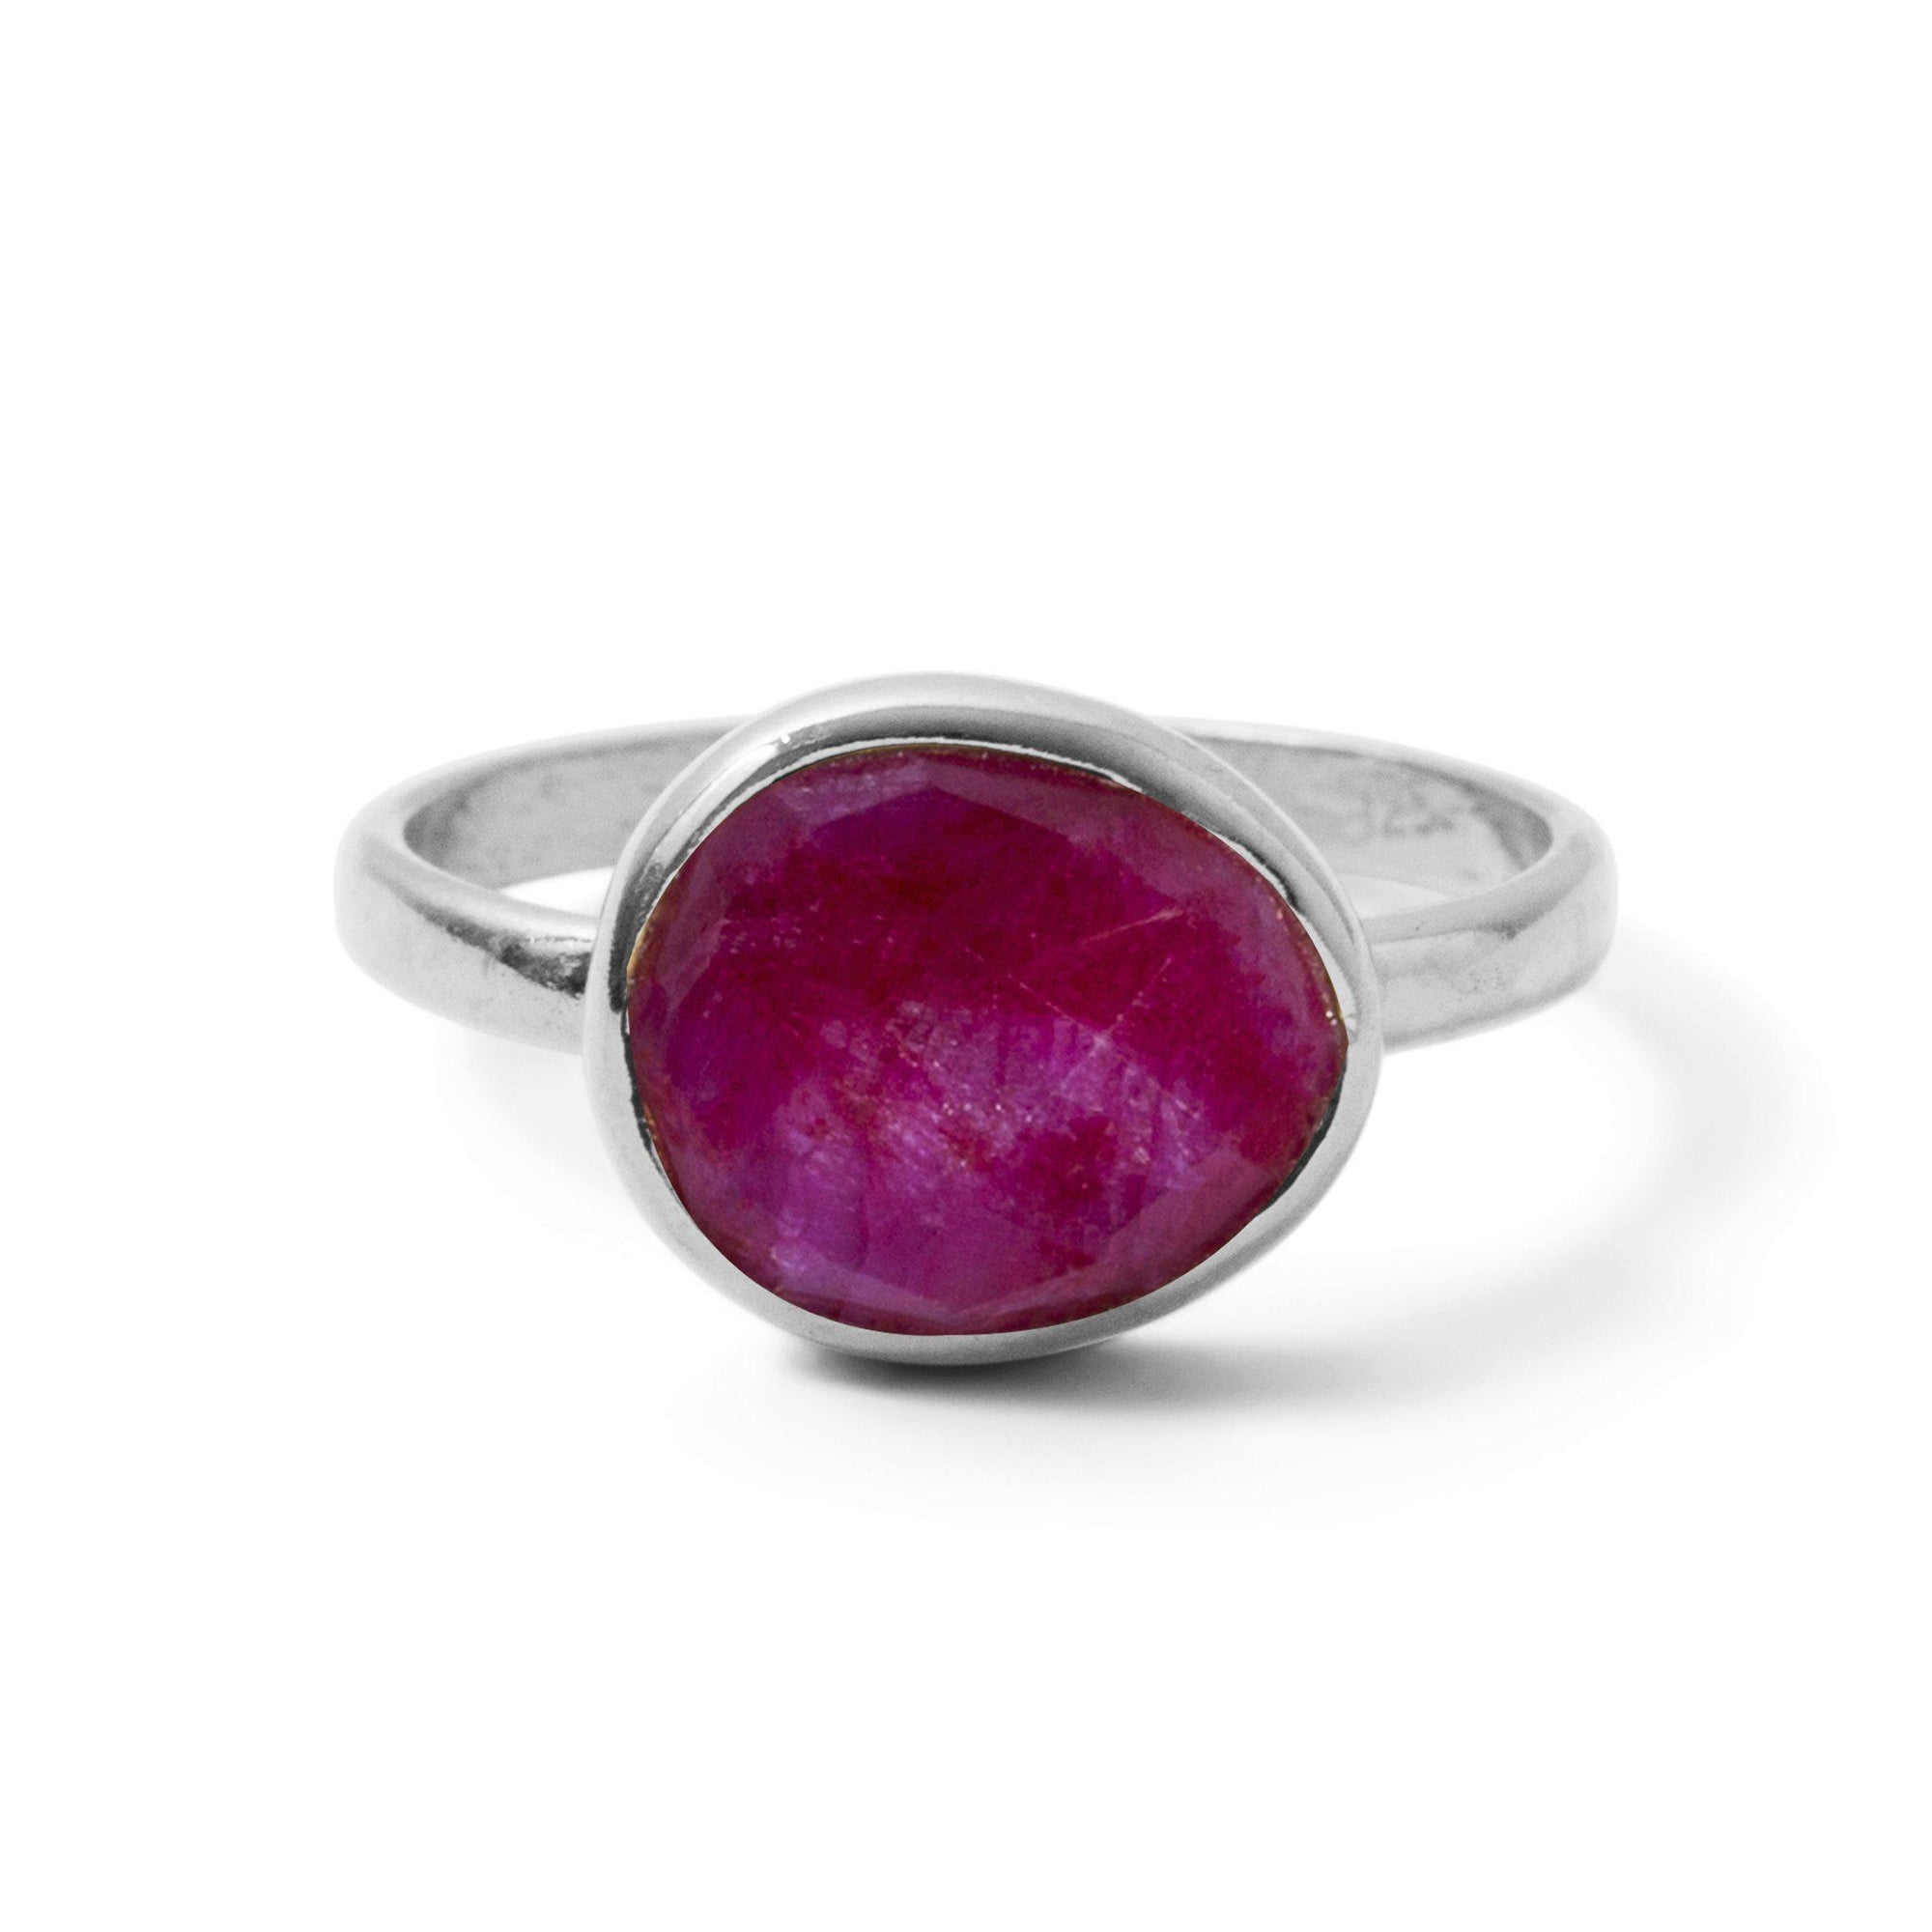 The Polki Gemstone Ring in Silver